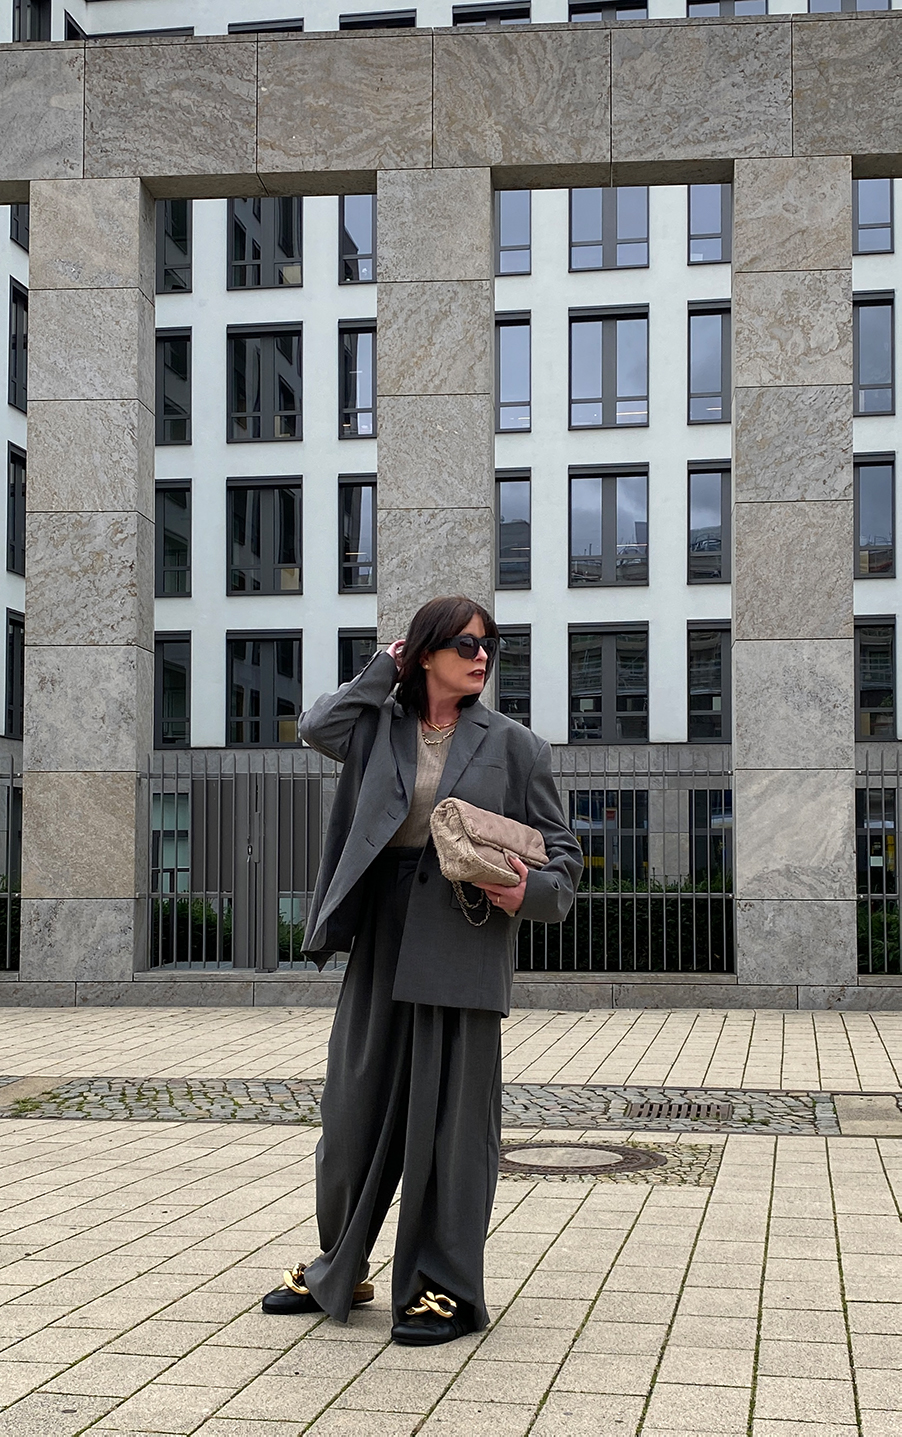 Just-take-a-look Berlin - Chanel Tasche, Grauer Suit